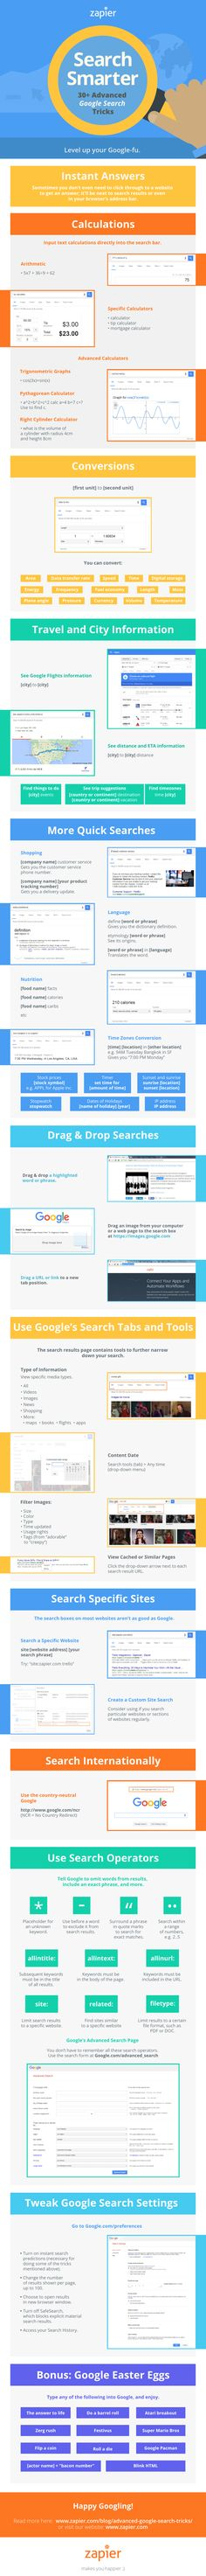 A New Infographic Featuring 30+ Practical Google Search Tips ~ Educational Technology and Mobile Learning